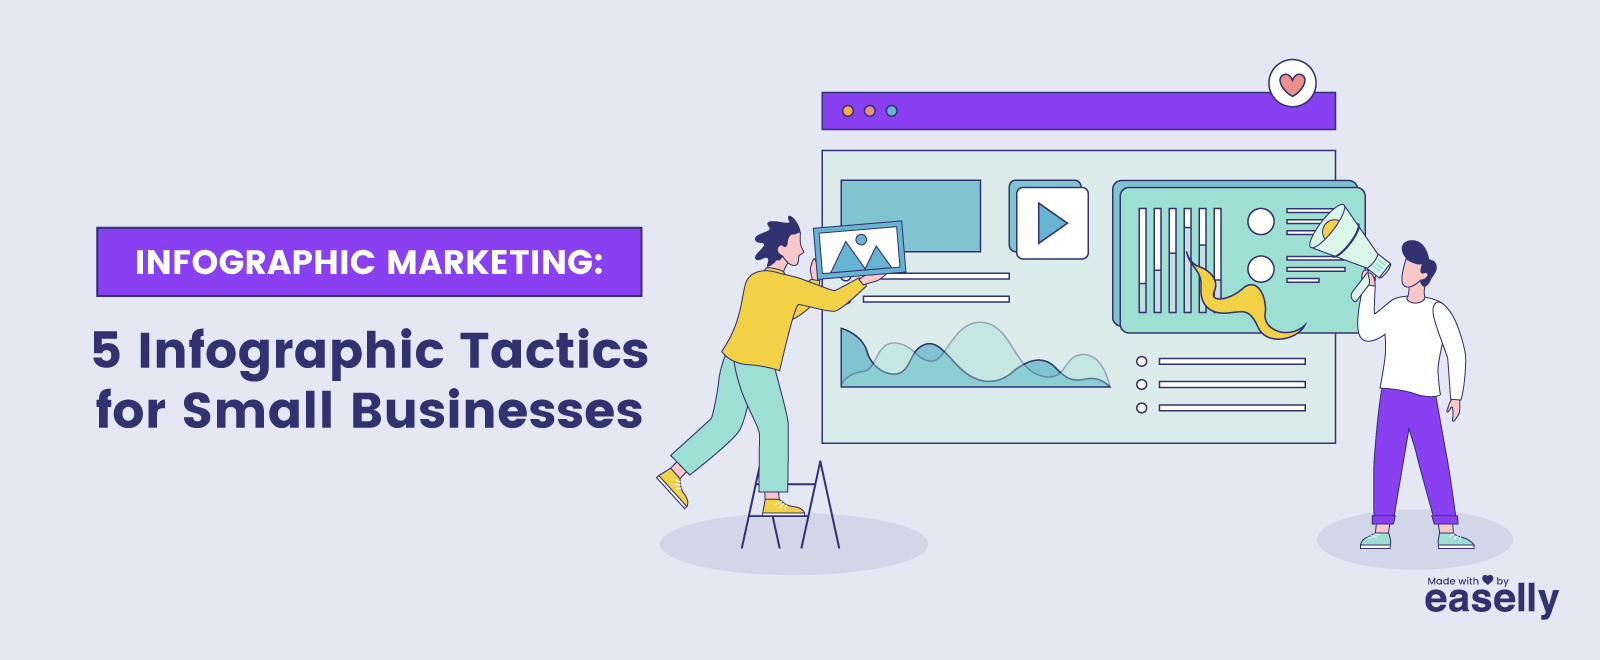 5 infographic tactics for small business